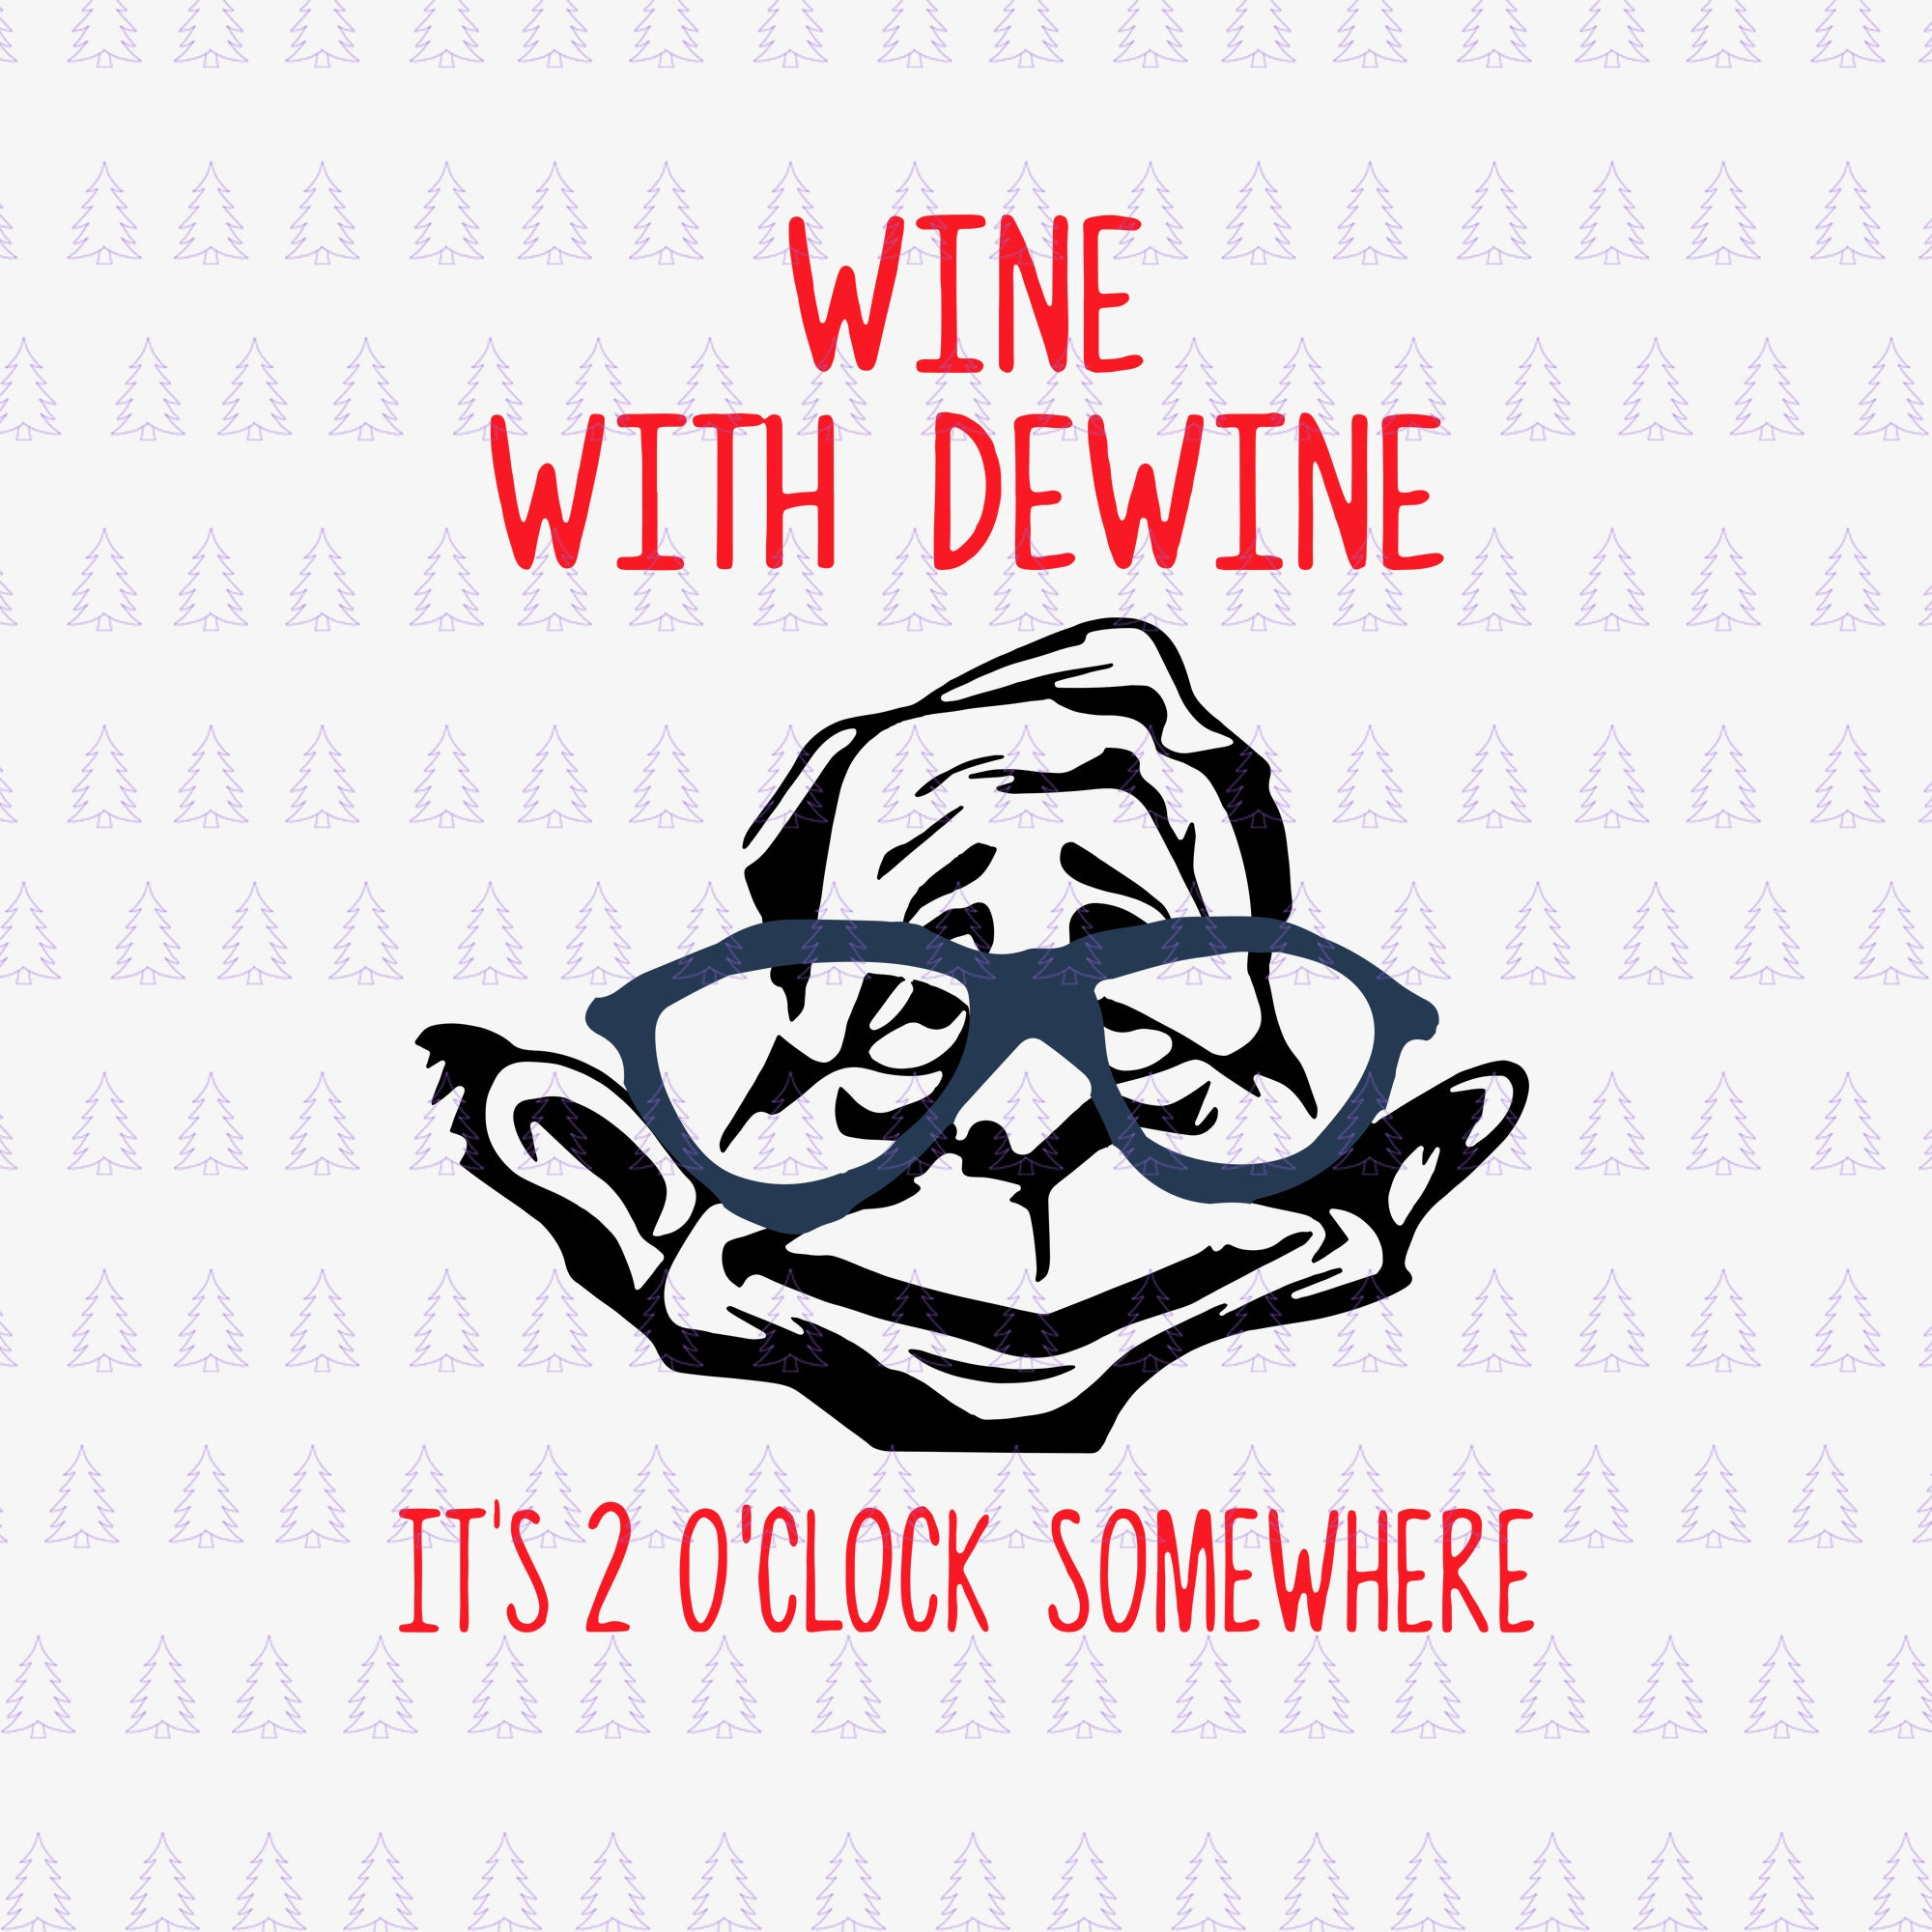 Wine with dewine it is 2 o clock somewhere svg, wine with dewine it is 2 o clock somewhere, wine with dewine it is 2 o clock somewhere png, eps, dxf, svg file